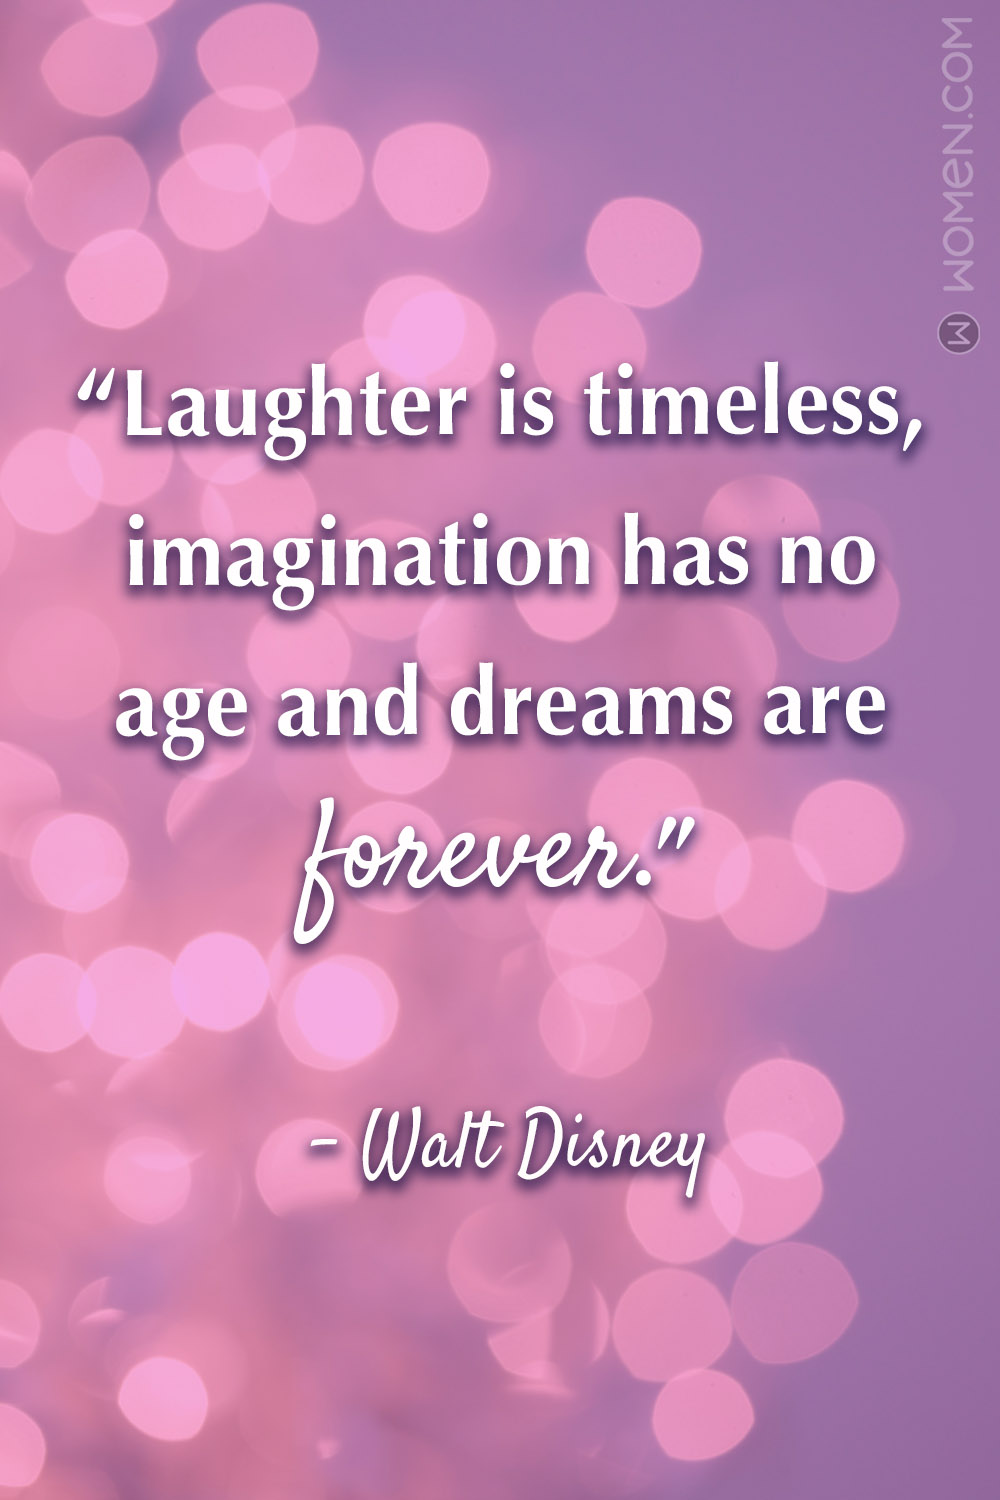 Disney, walt disney quote